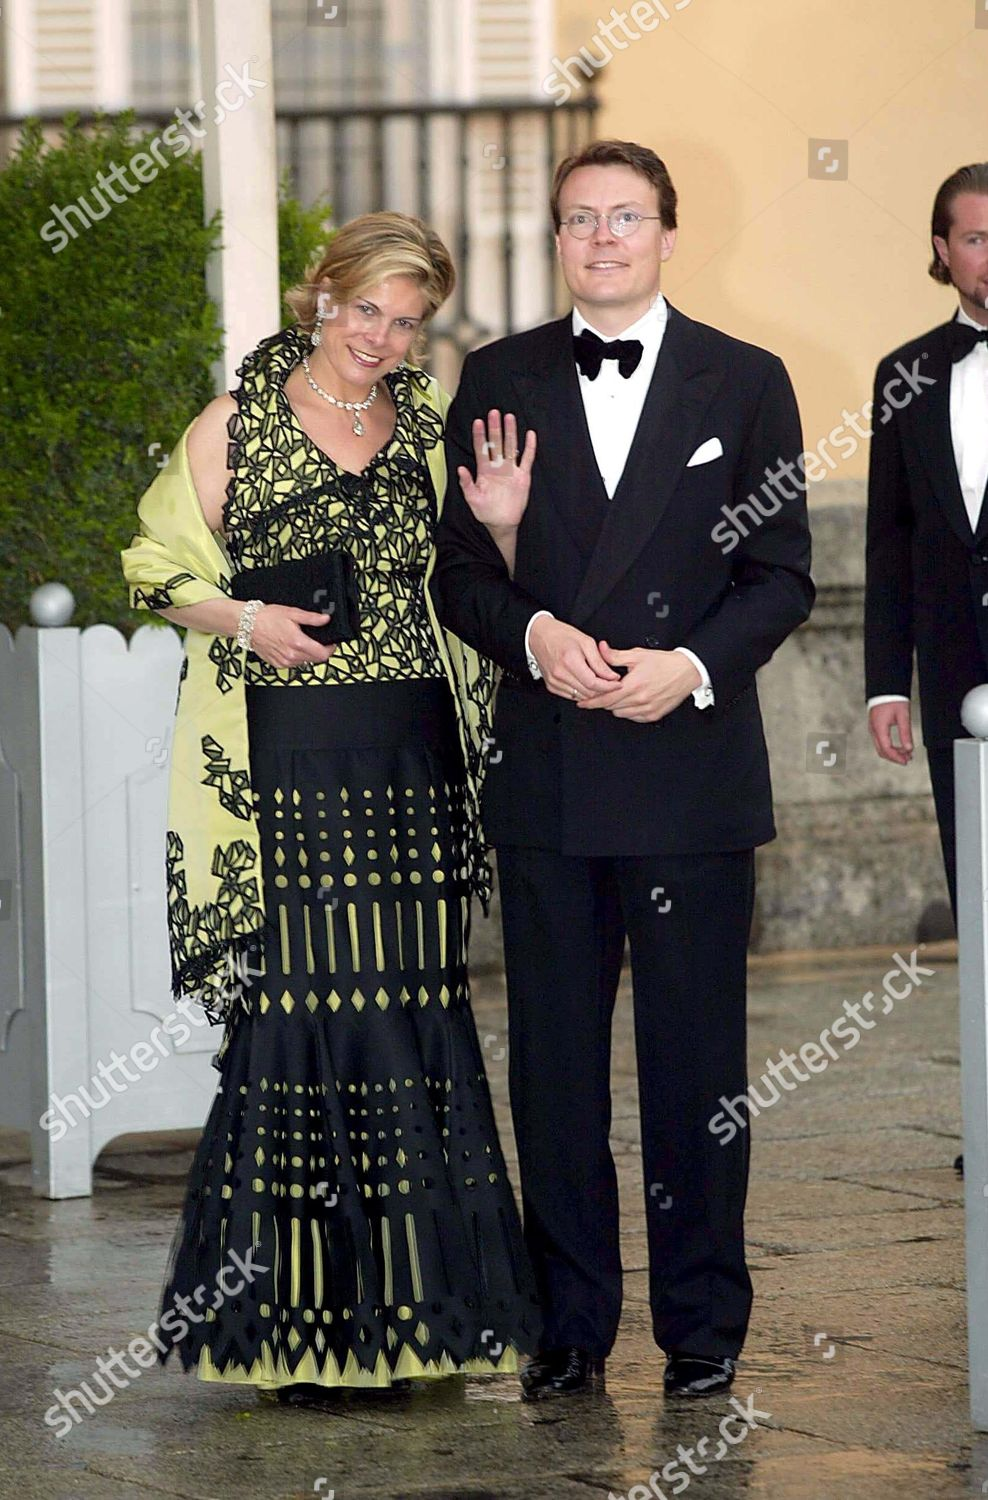 GALA DINNER TO CELEBRATE THE WEDDING OF PRINCE FELIPE AND LETIZIA ORTIZ ROCASOLANO, PARDO PALACE, MADRID, SPAIN - 21 MAY 2004: стоковое фото